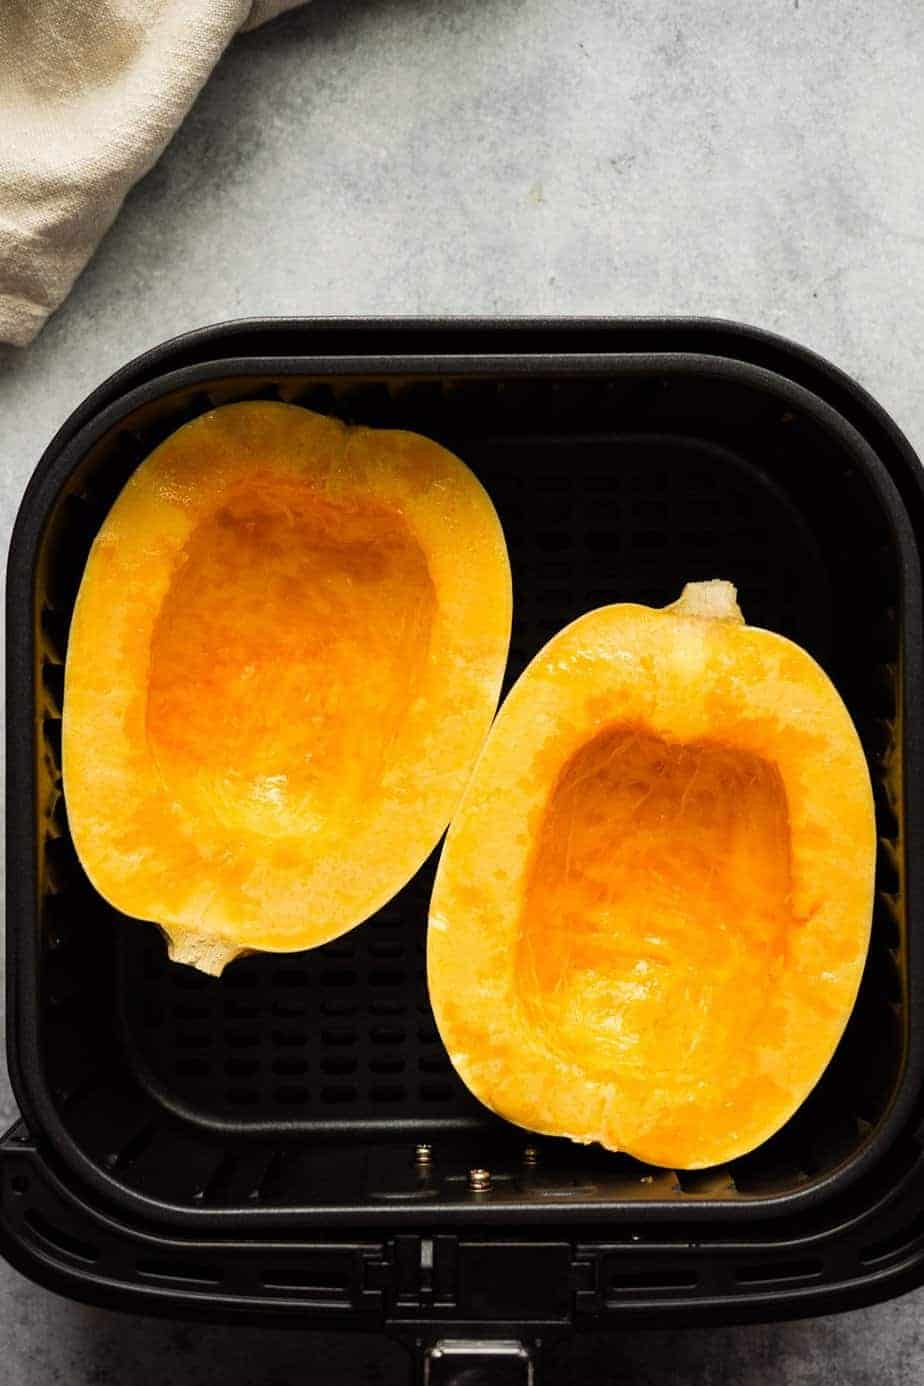 spaghetti squash inside the air fryer basket